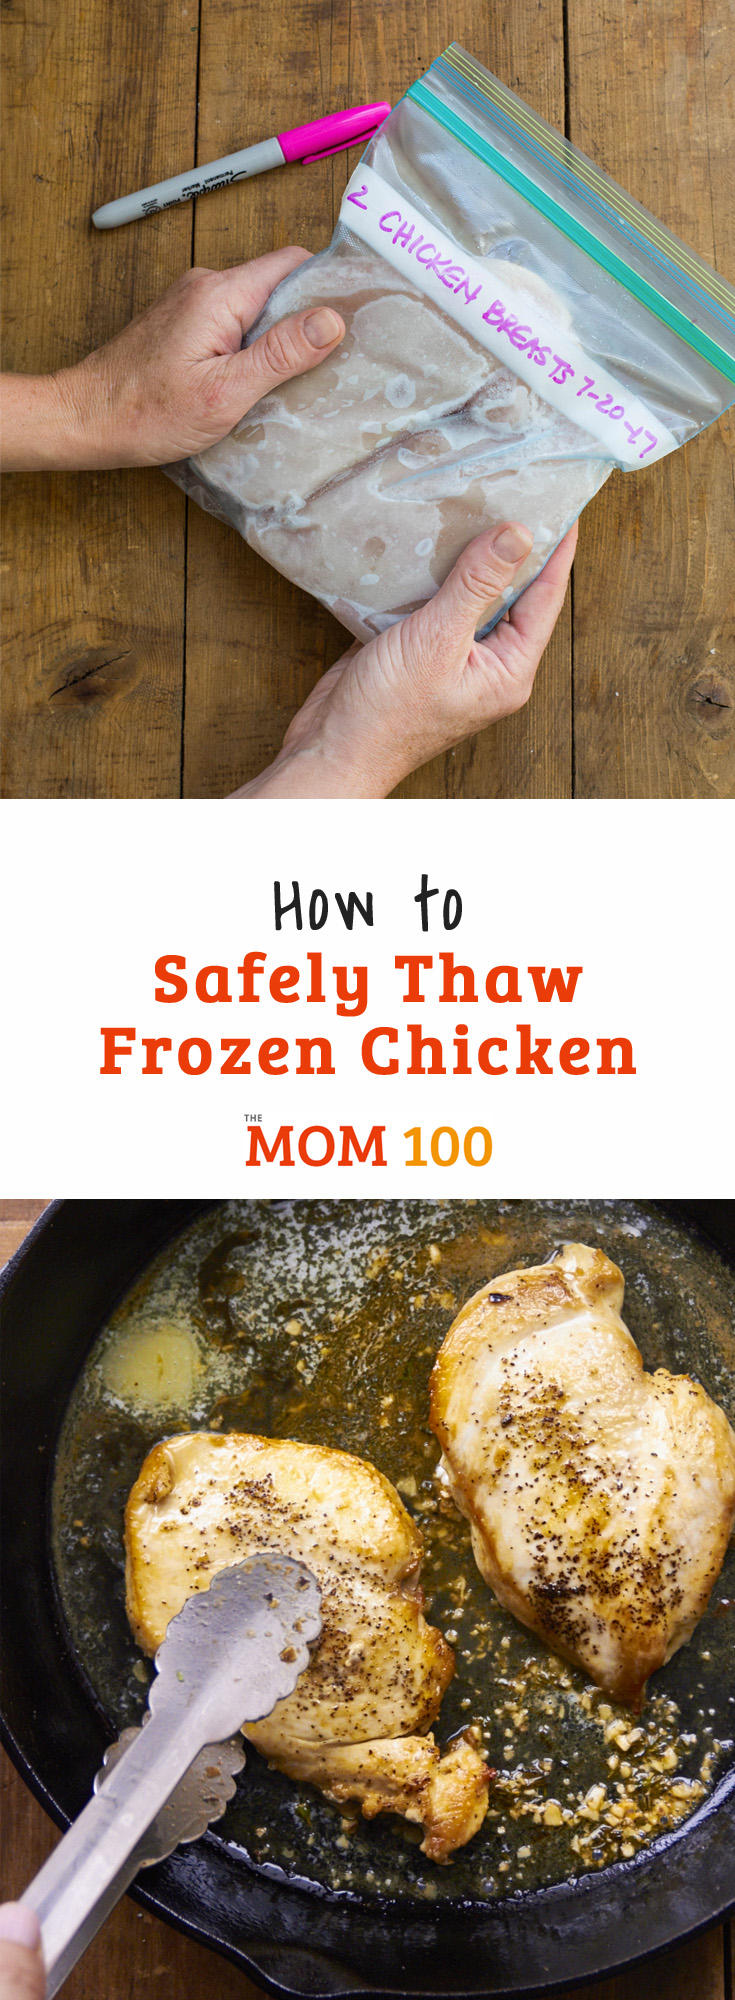 How to Safely Thaw Frozen Chicken: Getting chicken safely from a rock-hard frozen state to a thawed ready-to-cook state raises a lot of questions. Here are the answers.